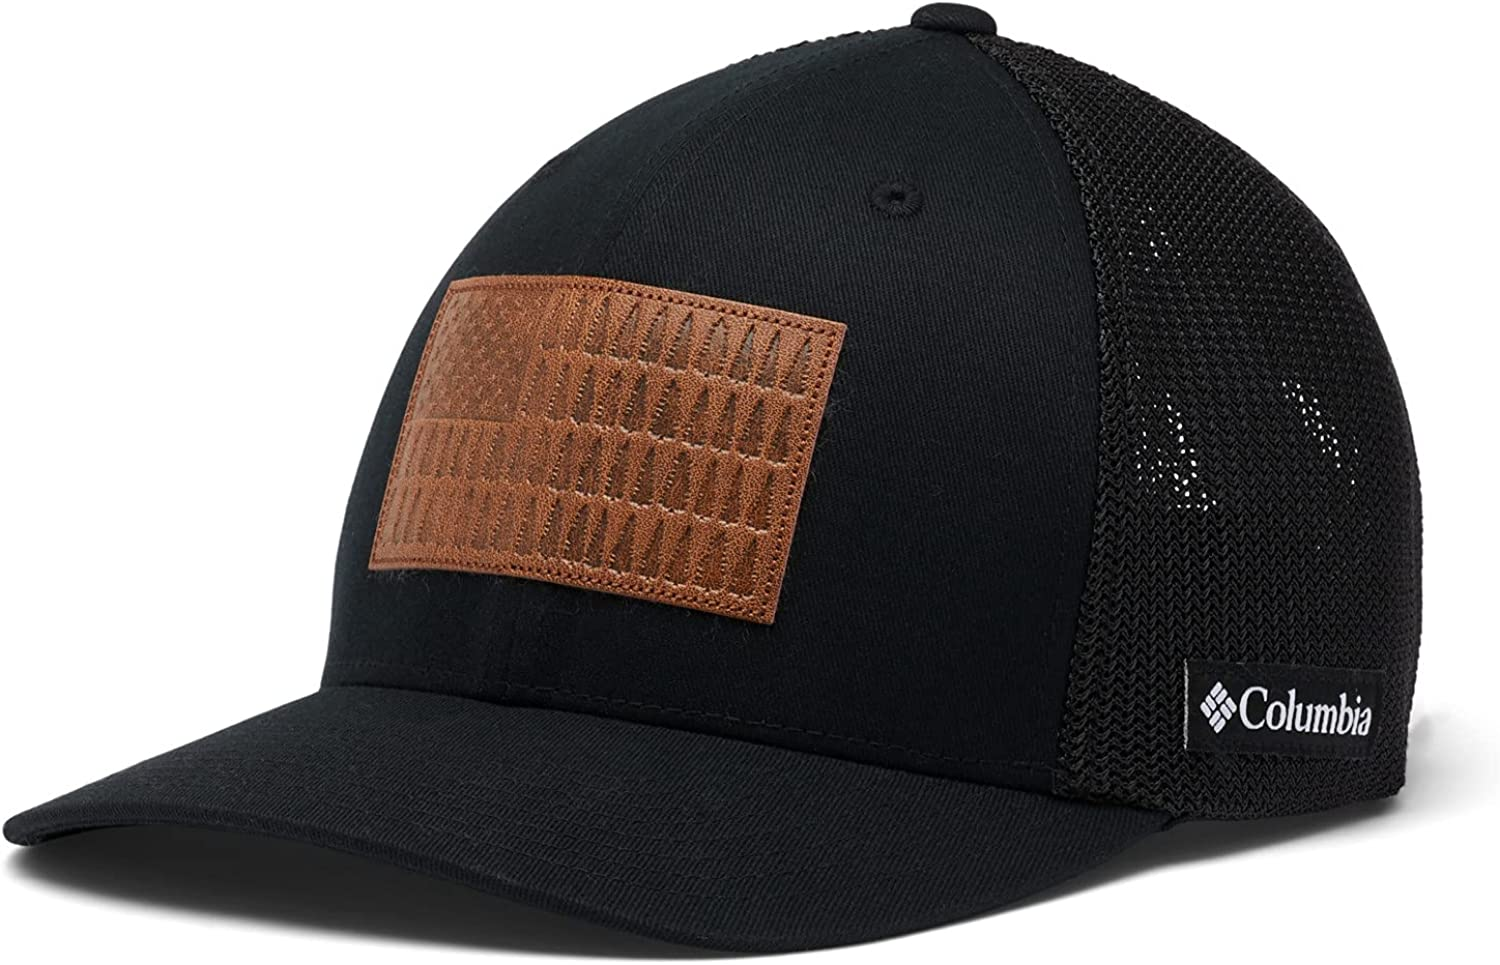 Lowest price challenge Columbia Rugged Outdoor Mesh Hat Charlotte Mall